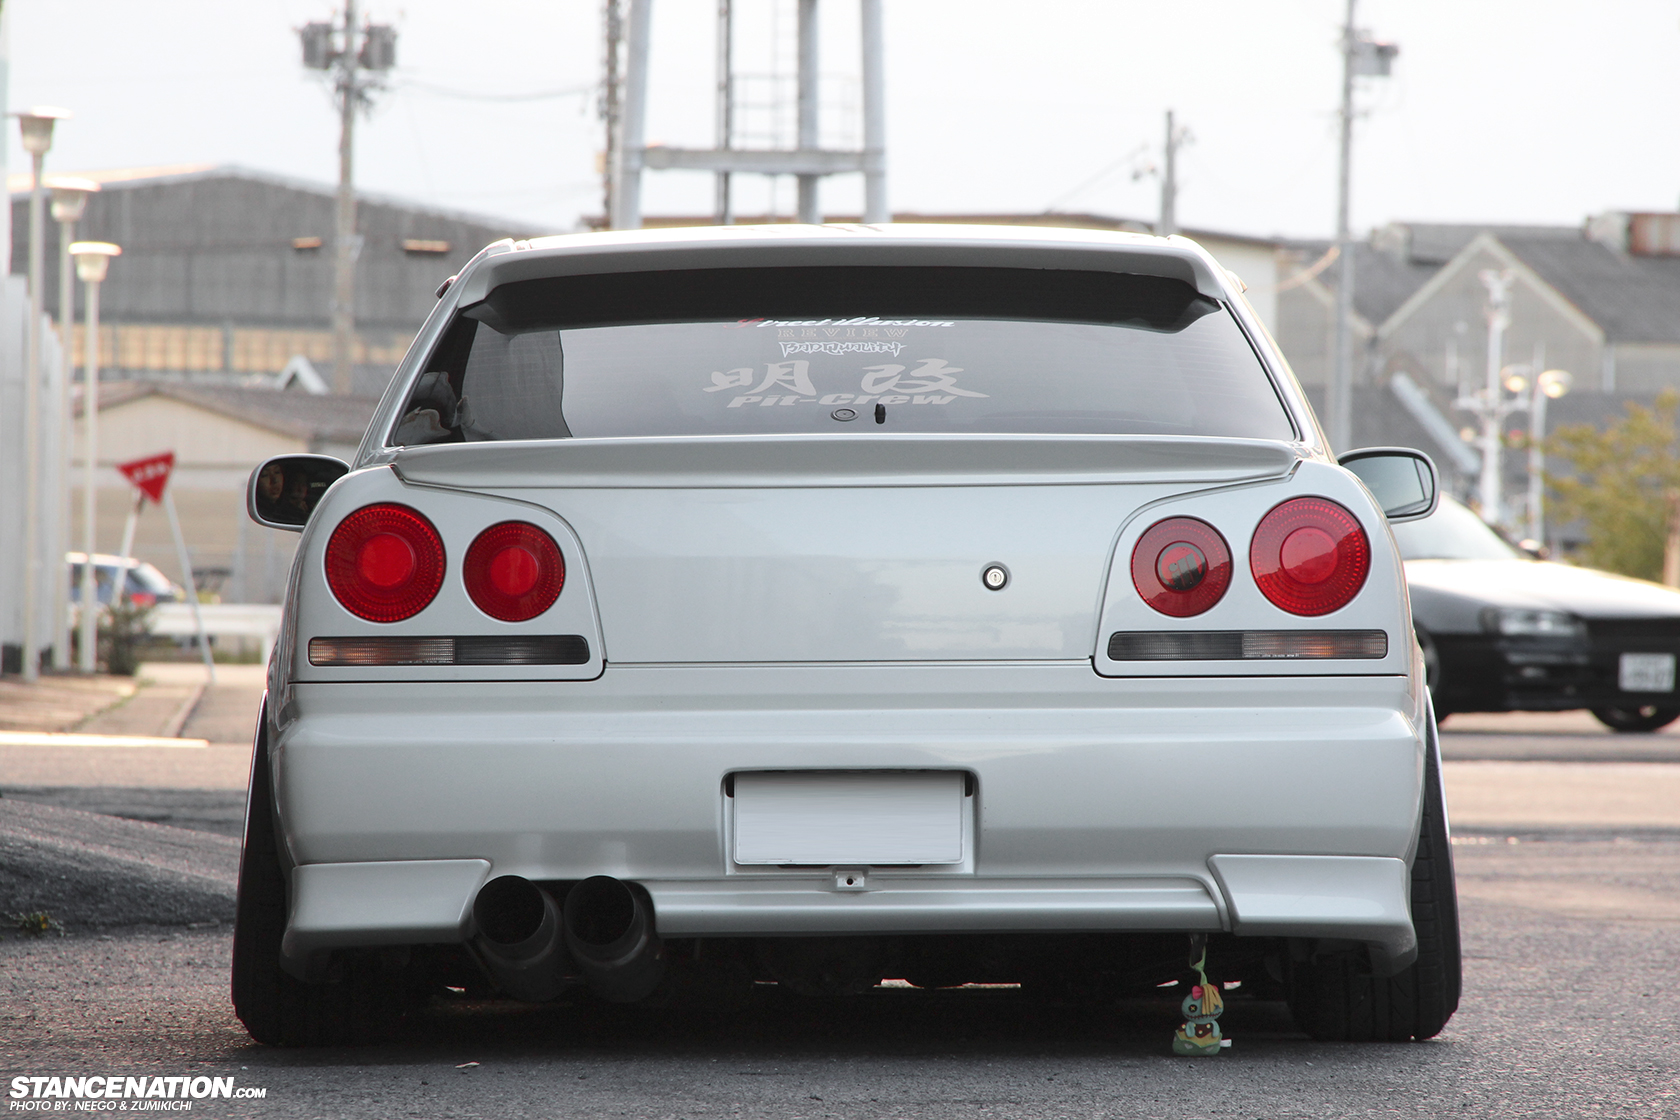 The Forgotten One Kazuyuki S Nissan Skyline Stancenation Form Function